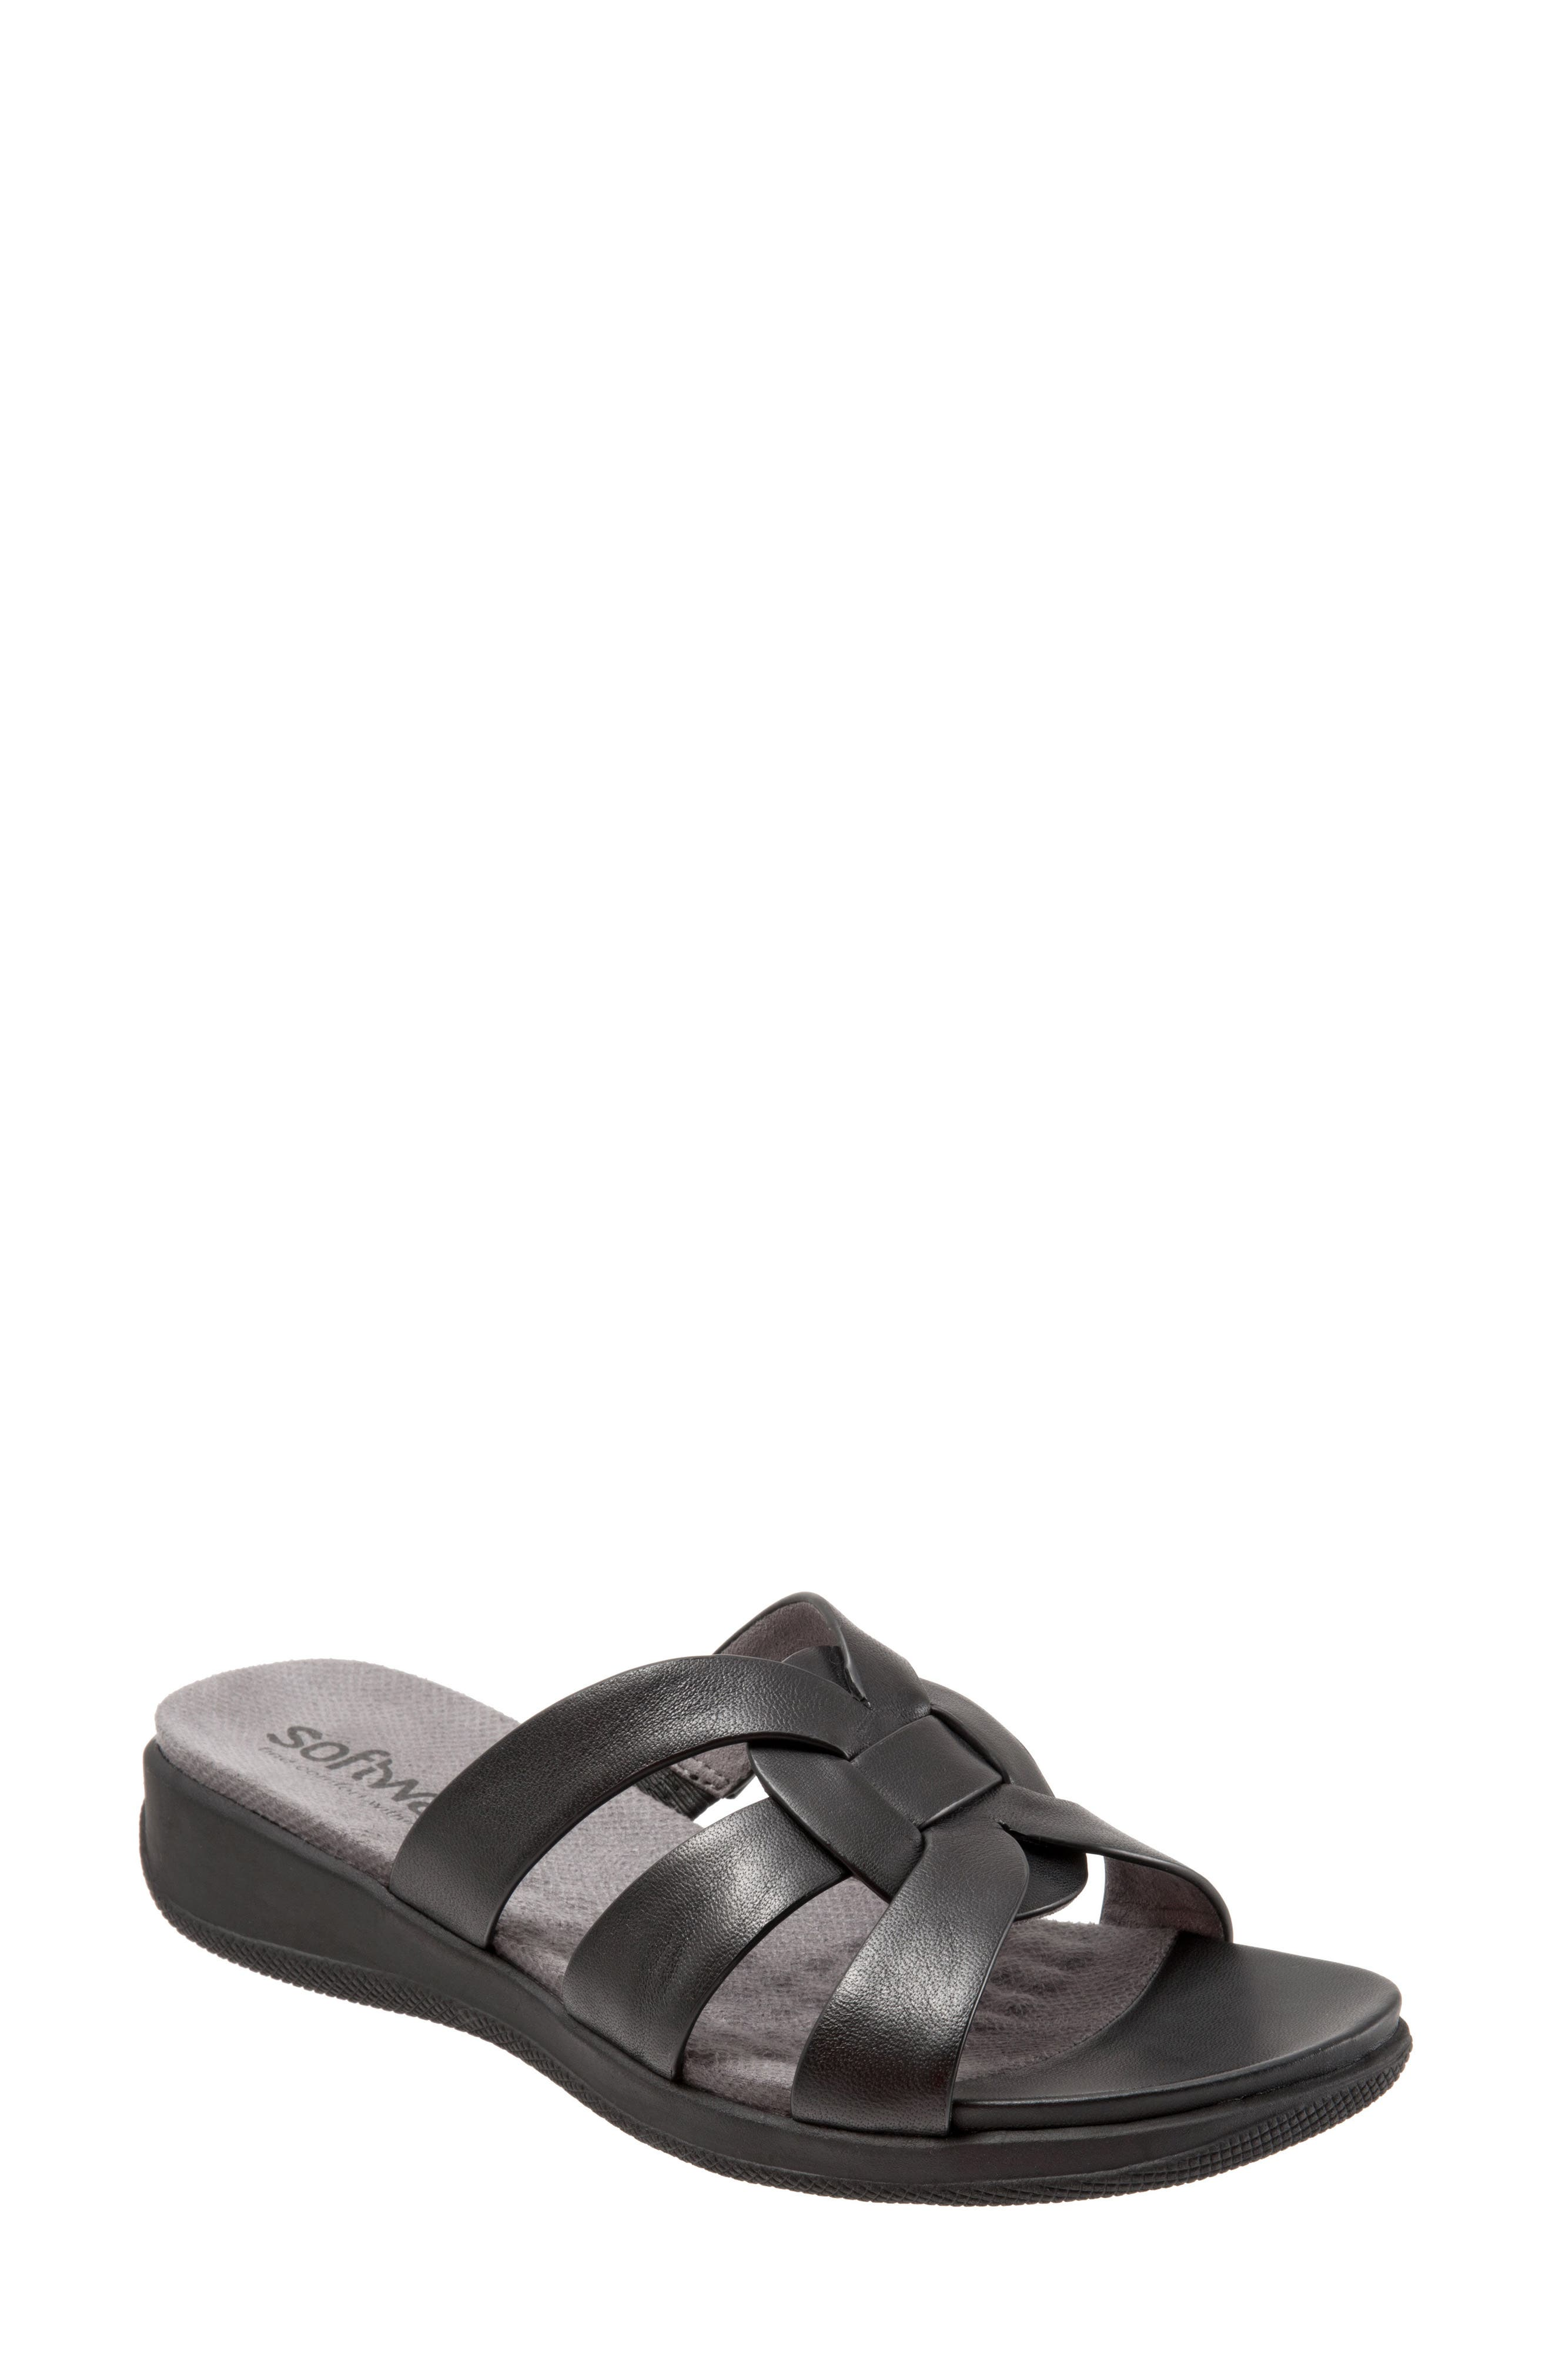 Thompson Slide Sandal,                             Main thumbnail 1, color,                             001